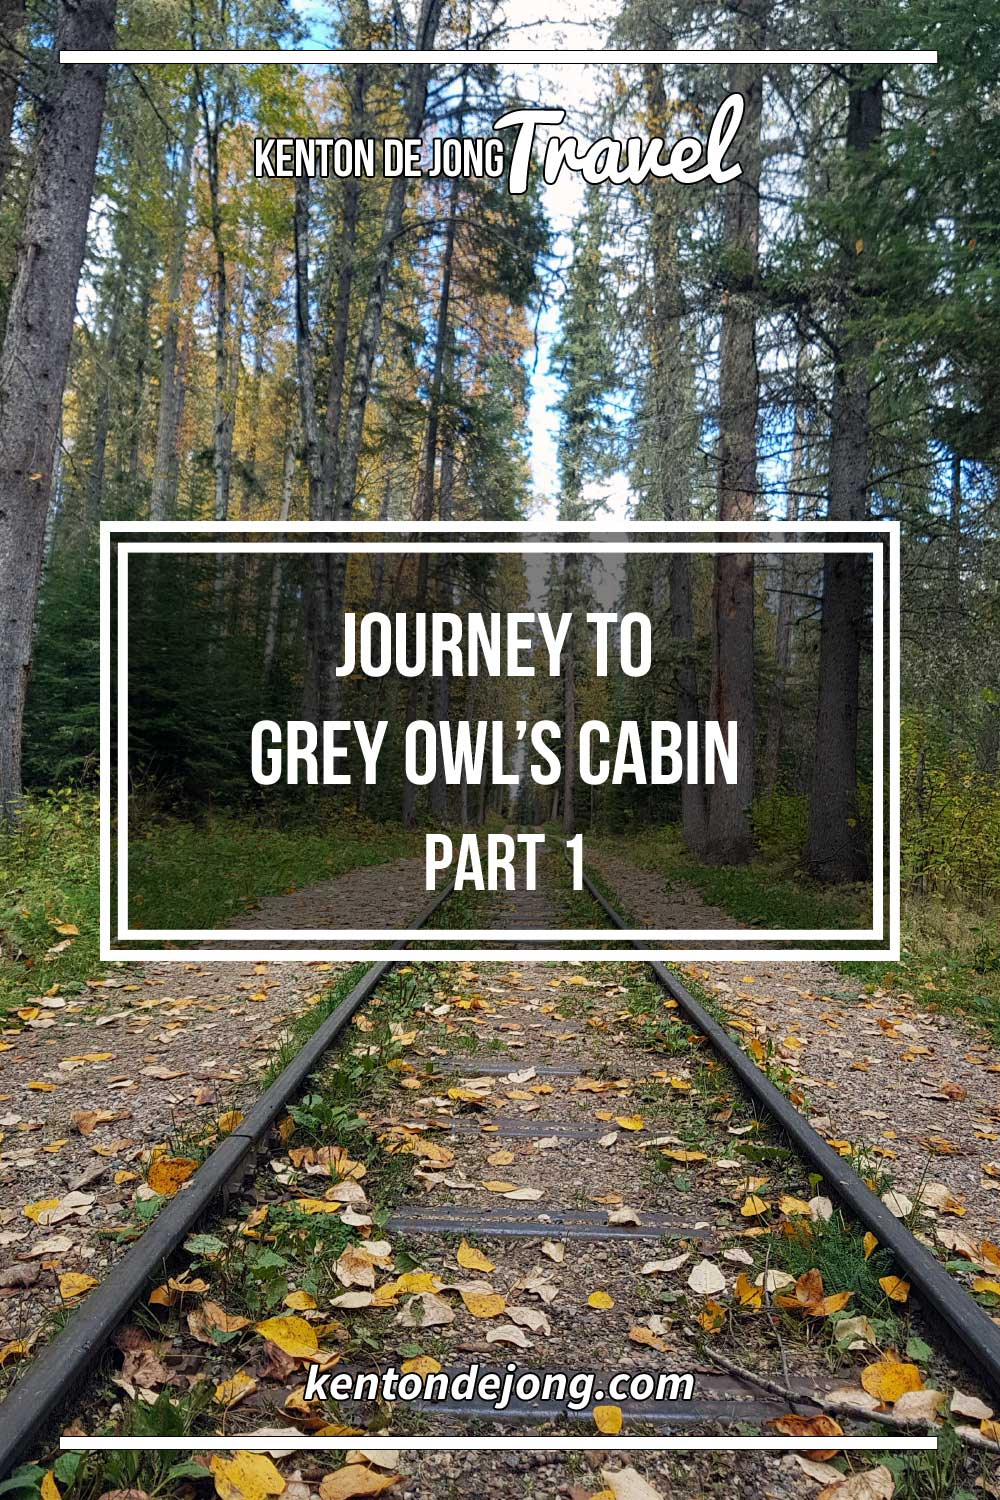 Journey to Grey Owl's Cabin – Part 1